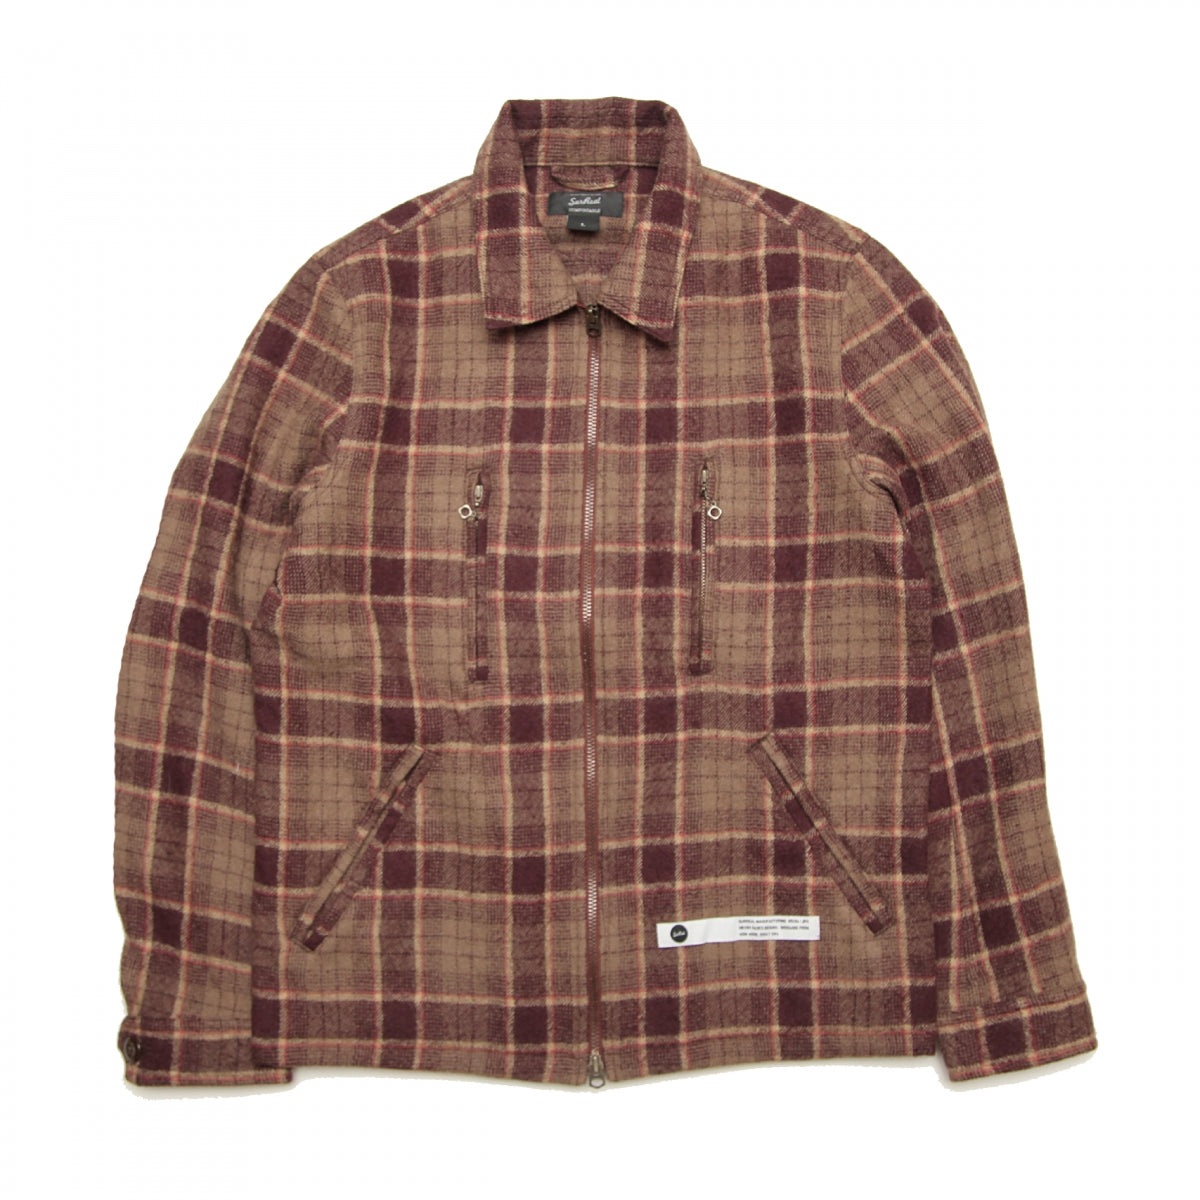 Alexander_Wool Trucker Jacket